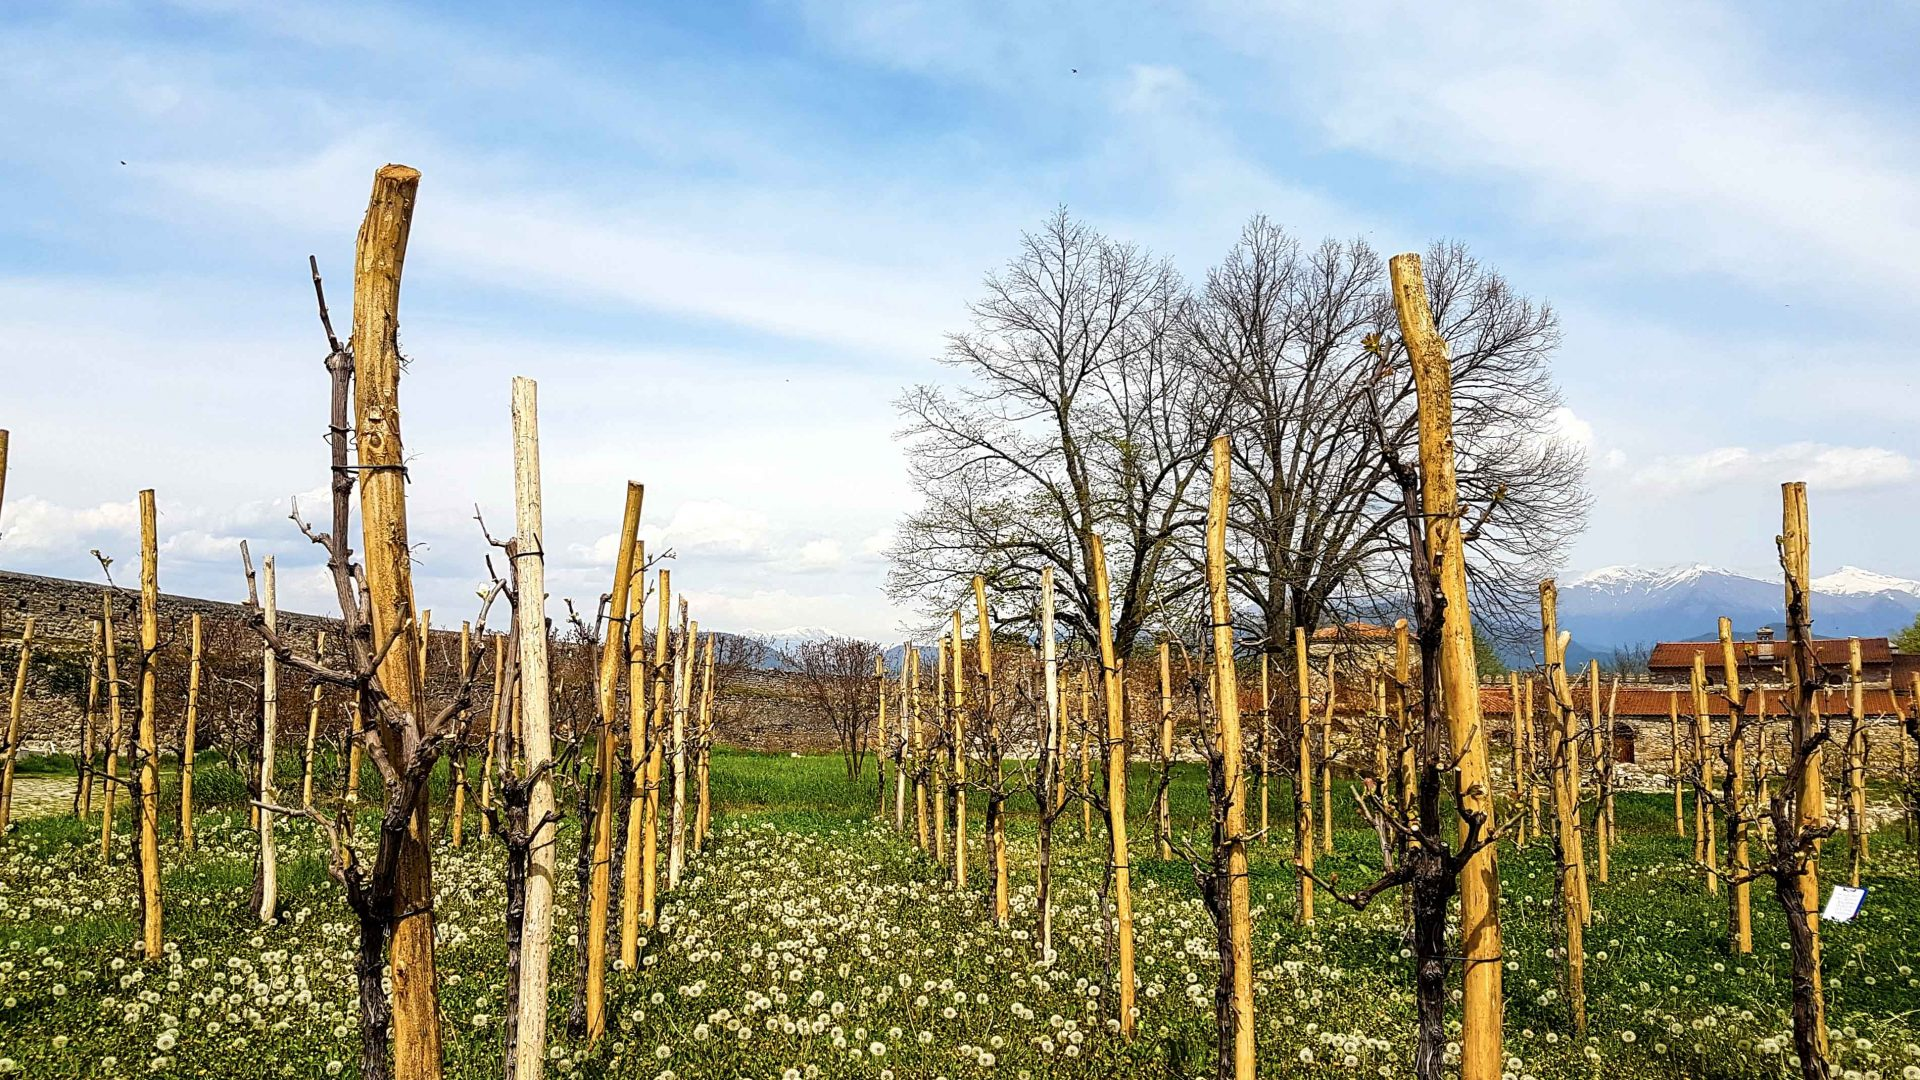 A vineyard of Saperavi grapes in Georgia.